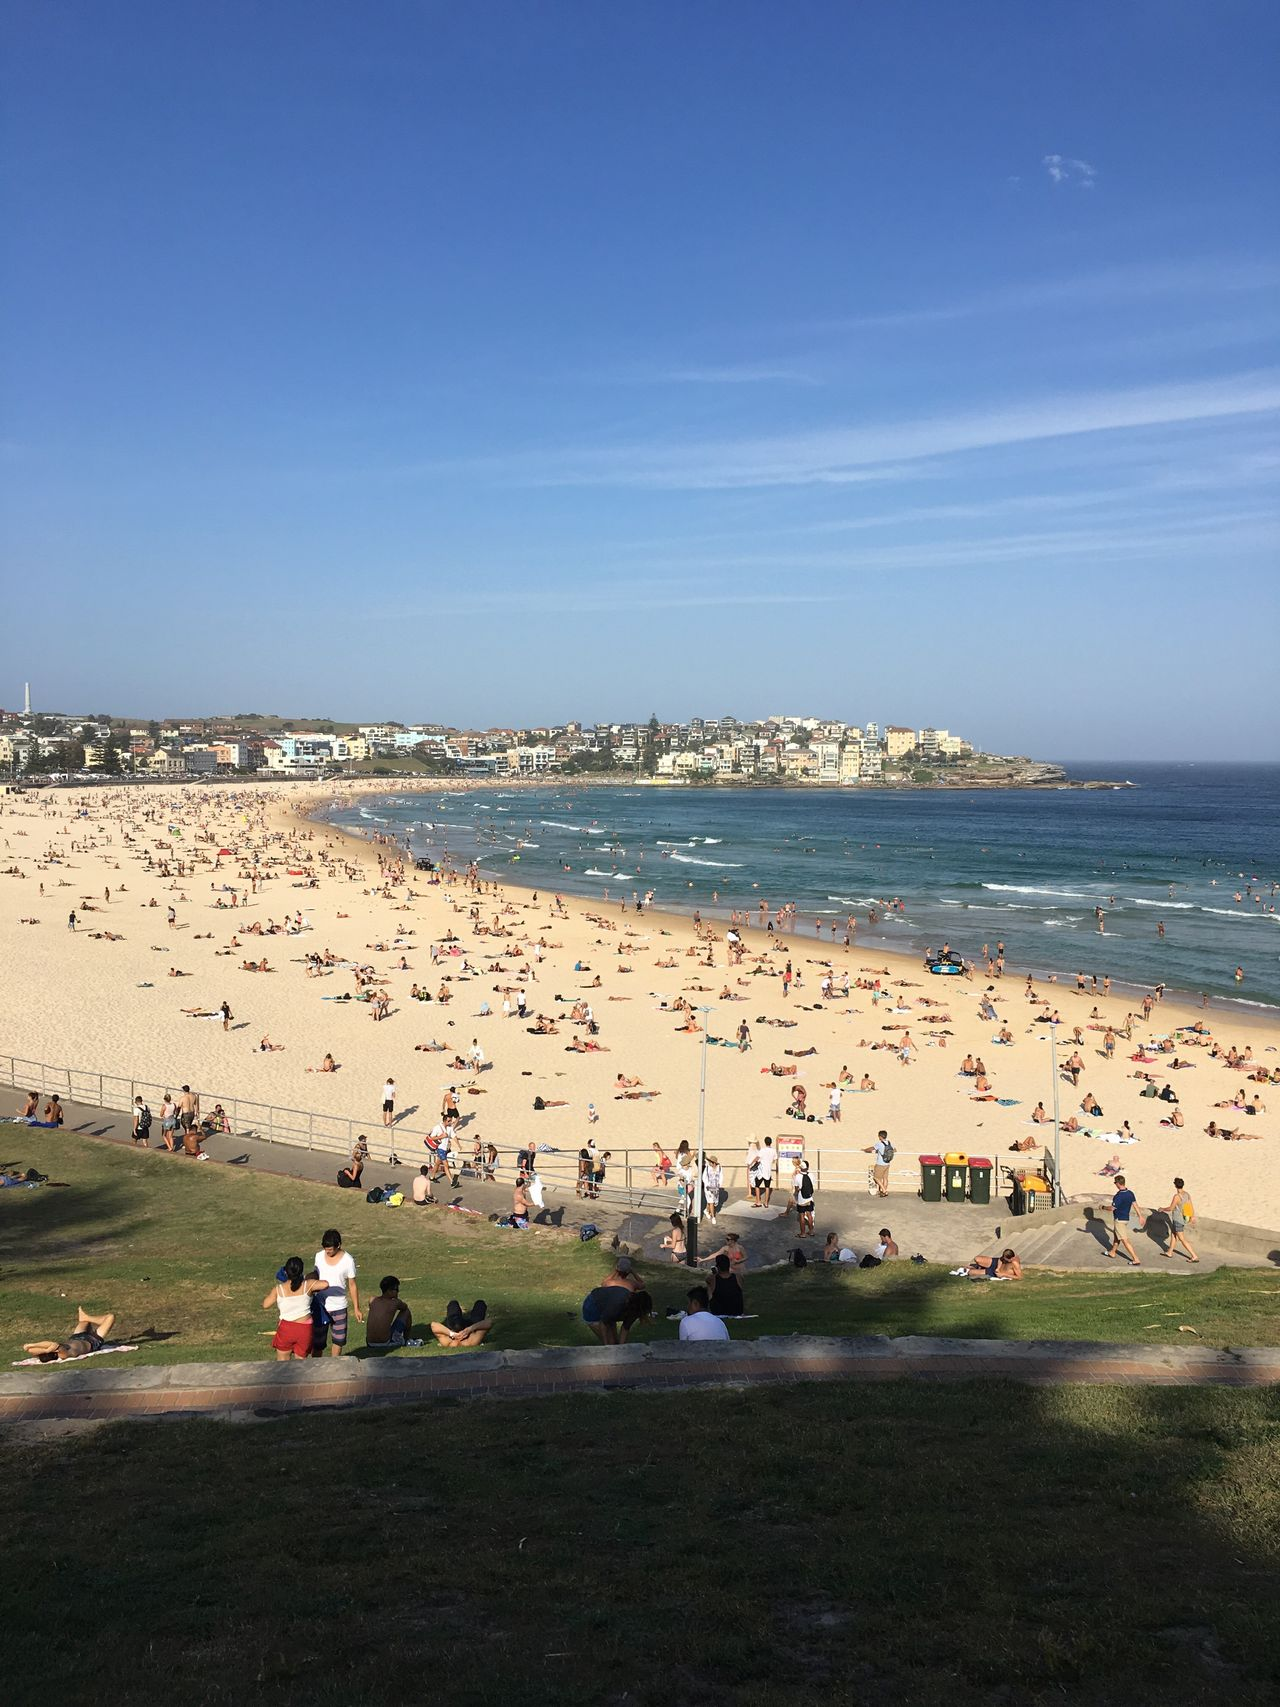 After work beach time Sea Clear Sky Beach Blue Tourist Water Large Group Of People Horizon Over Water Outdoors Sky Real People Sand City Vacations People In The Background Bondi Beach Day People